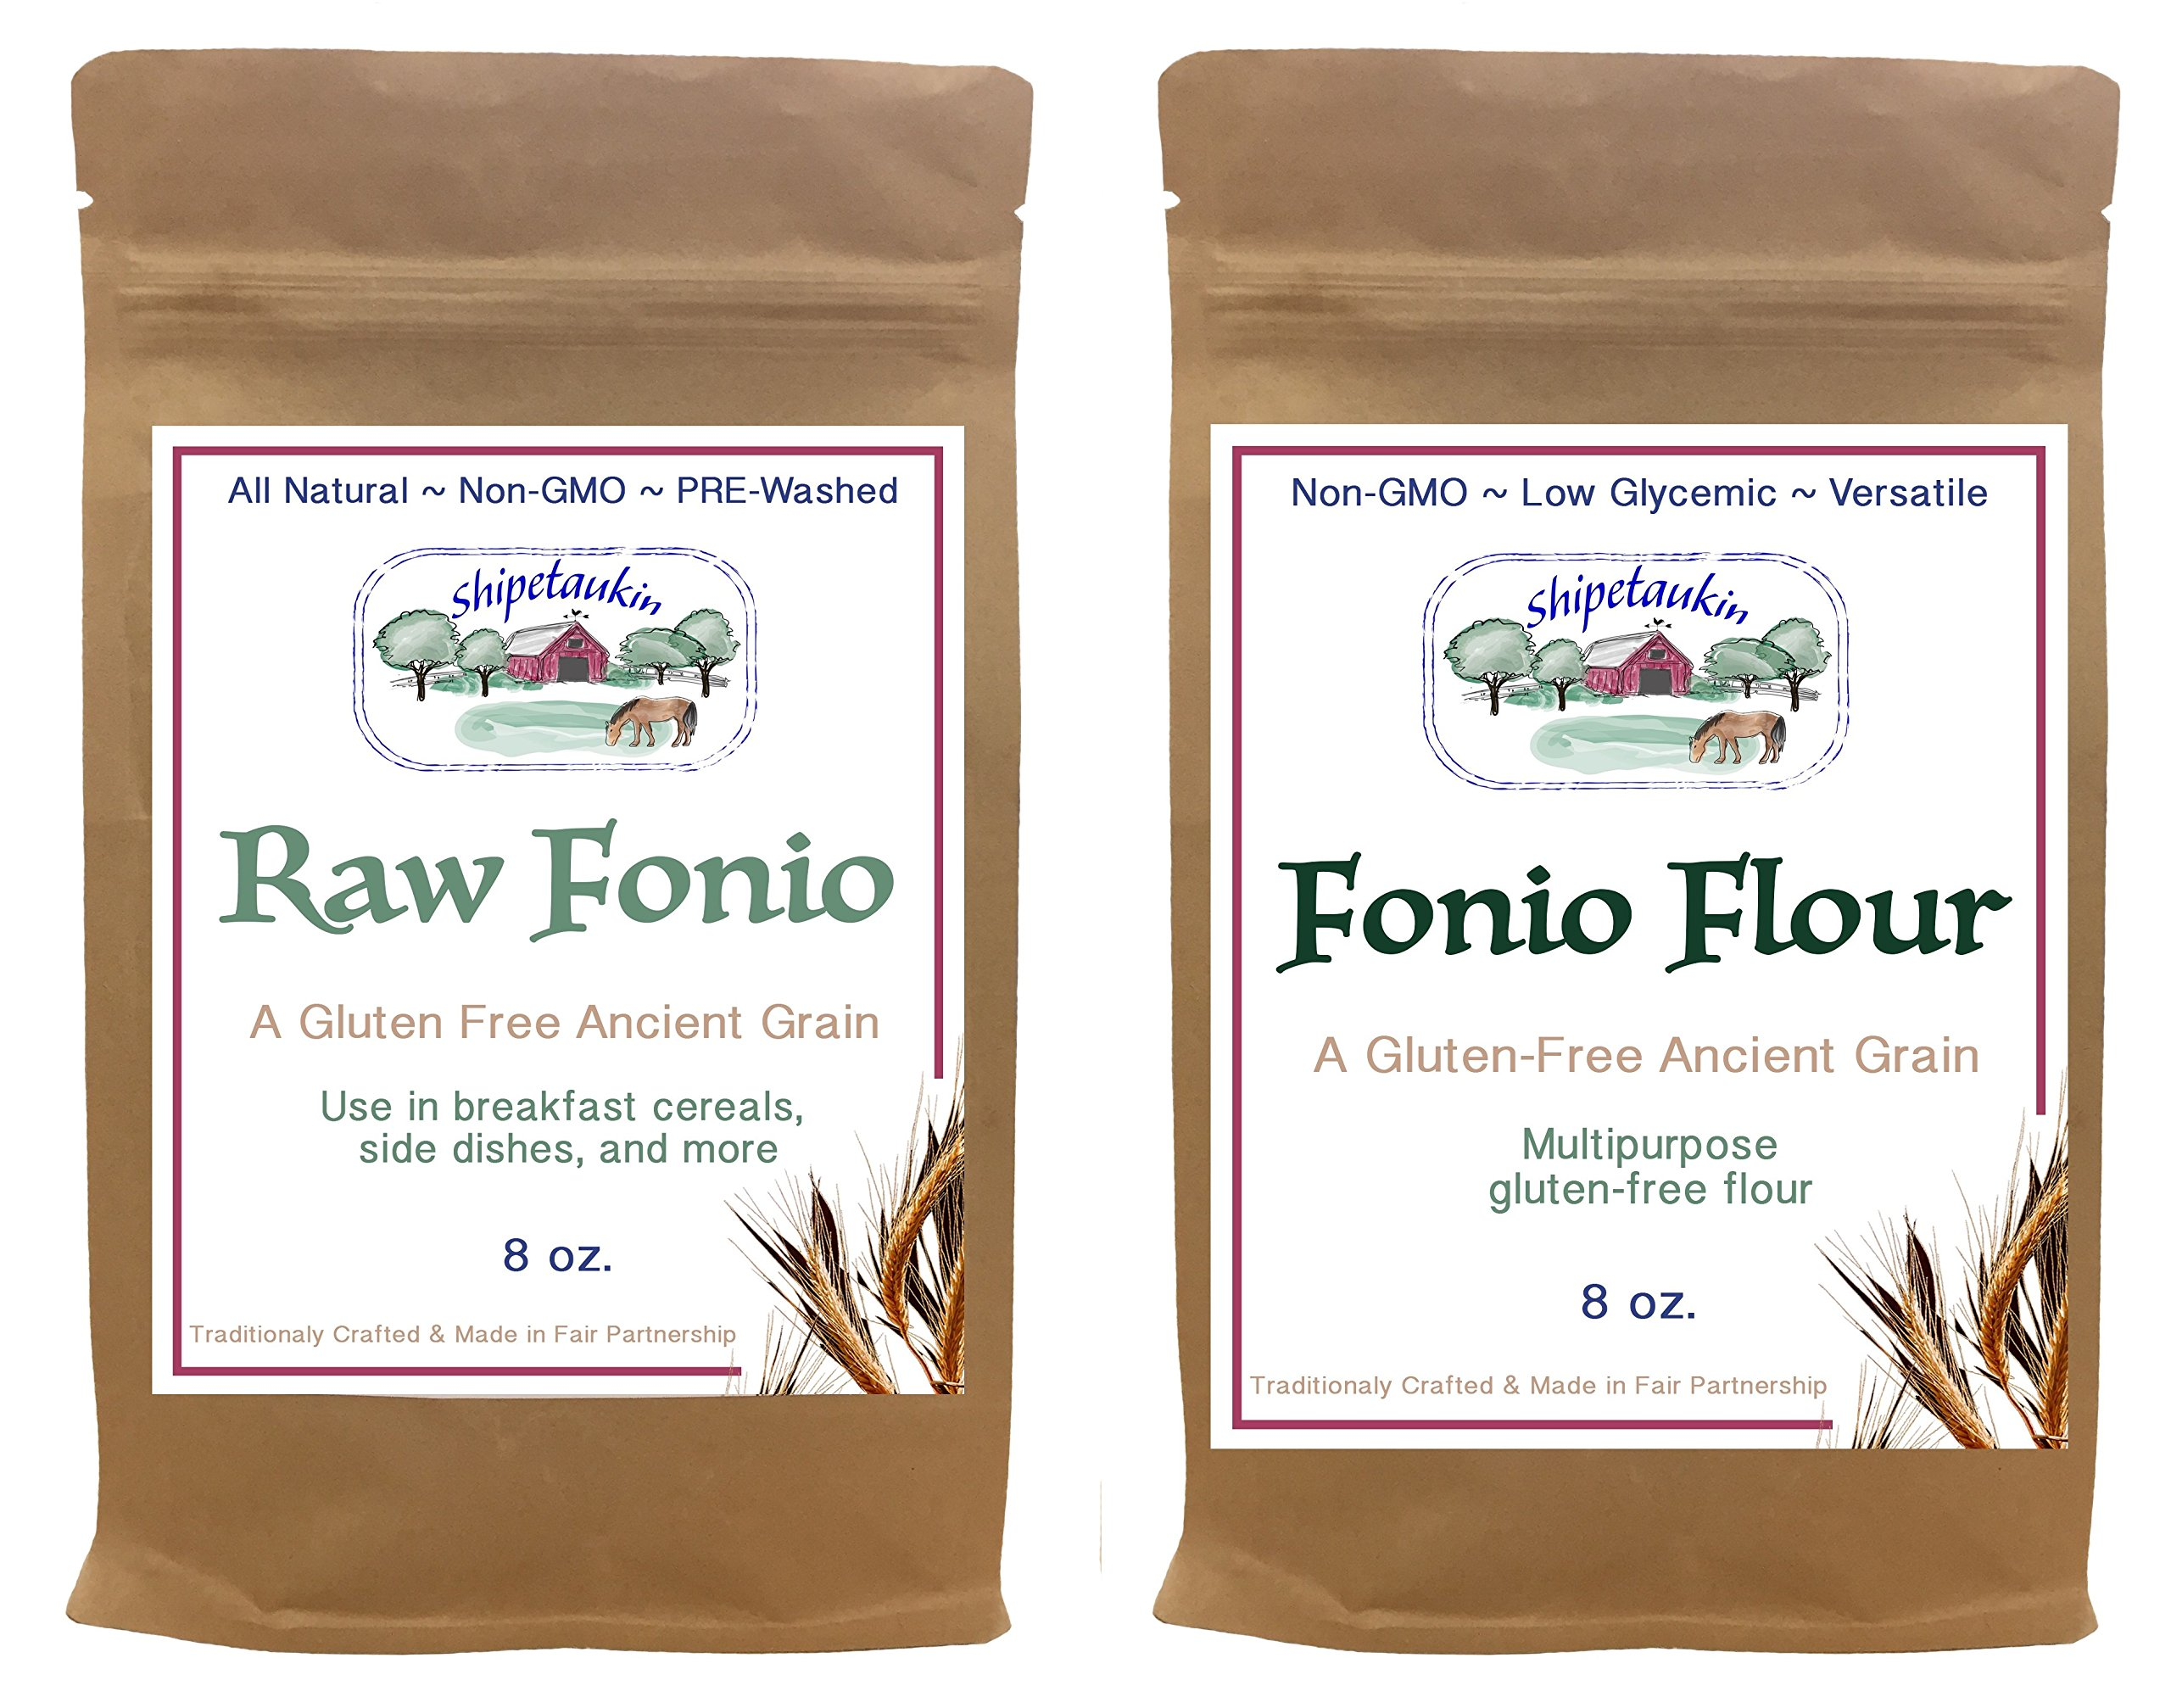 Shipetaukin Vegan Gluten Free Lectin Free Raw Fonio Grain and Fonio Flour Ancient African Whole Grain Supergrain Sampler Bundle, 8 Ounces by Shipetaukin